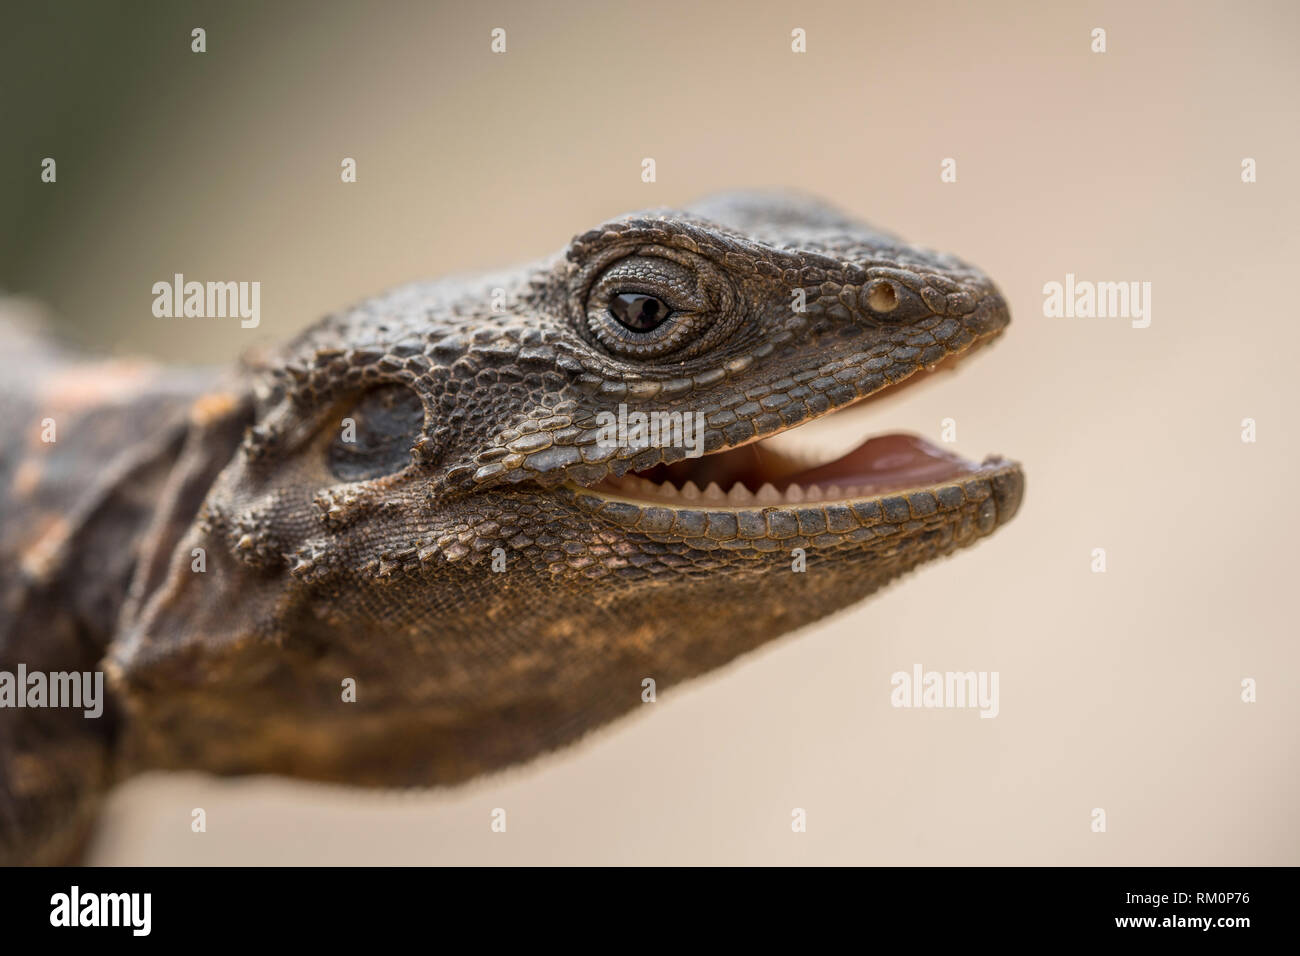 An agama lizard seems to smile at the camera in the deserts of Jordan. - Stock Image